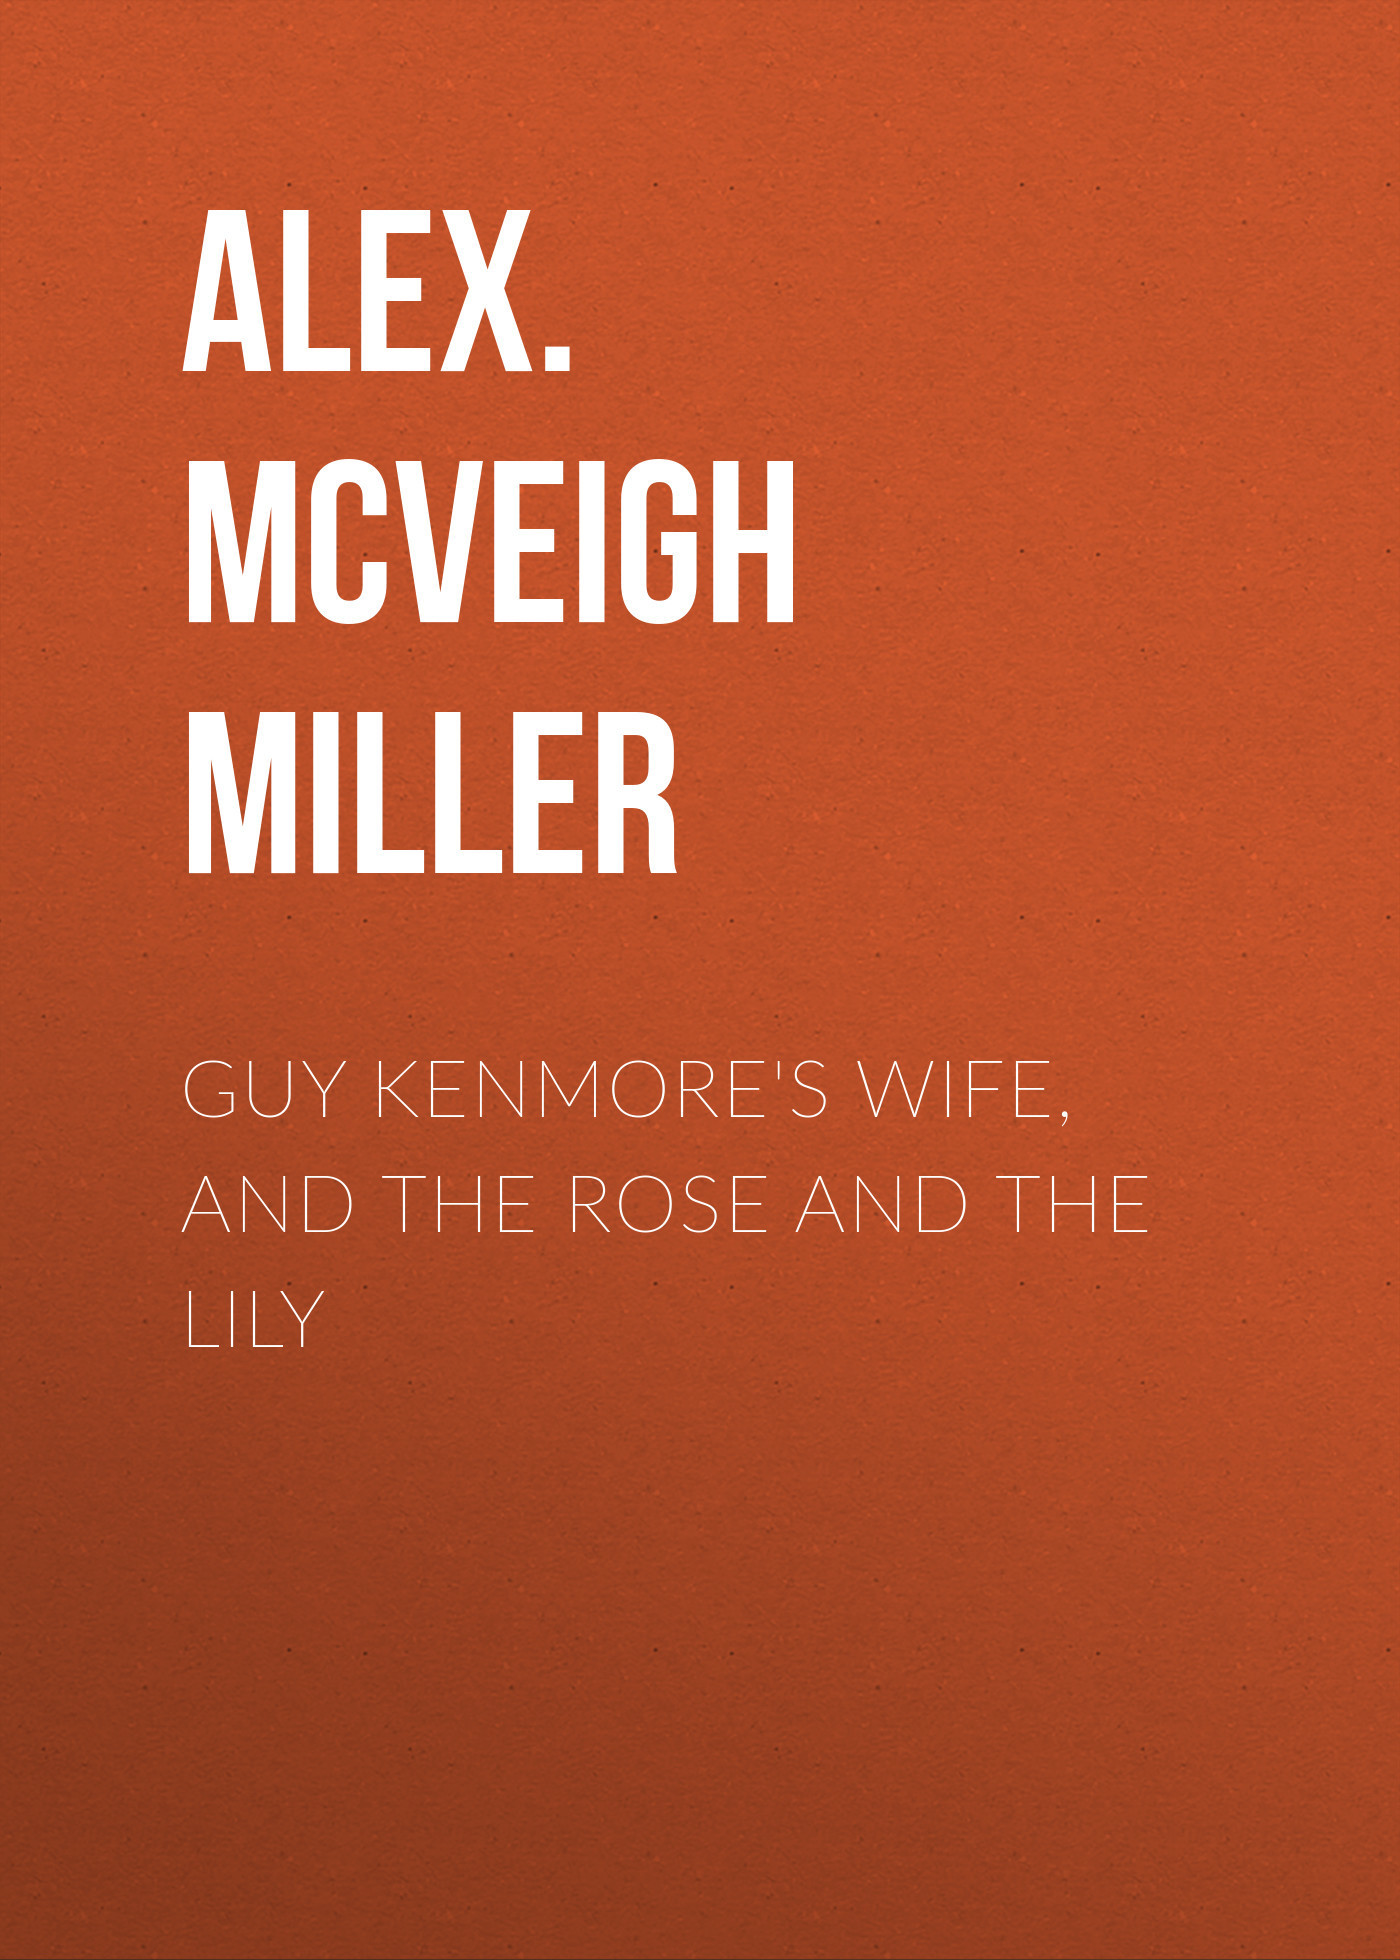 Alex. McVeigh Miller Guy Kenmore's Wife, and The Rose and the Lily the photographer s wife